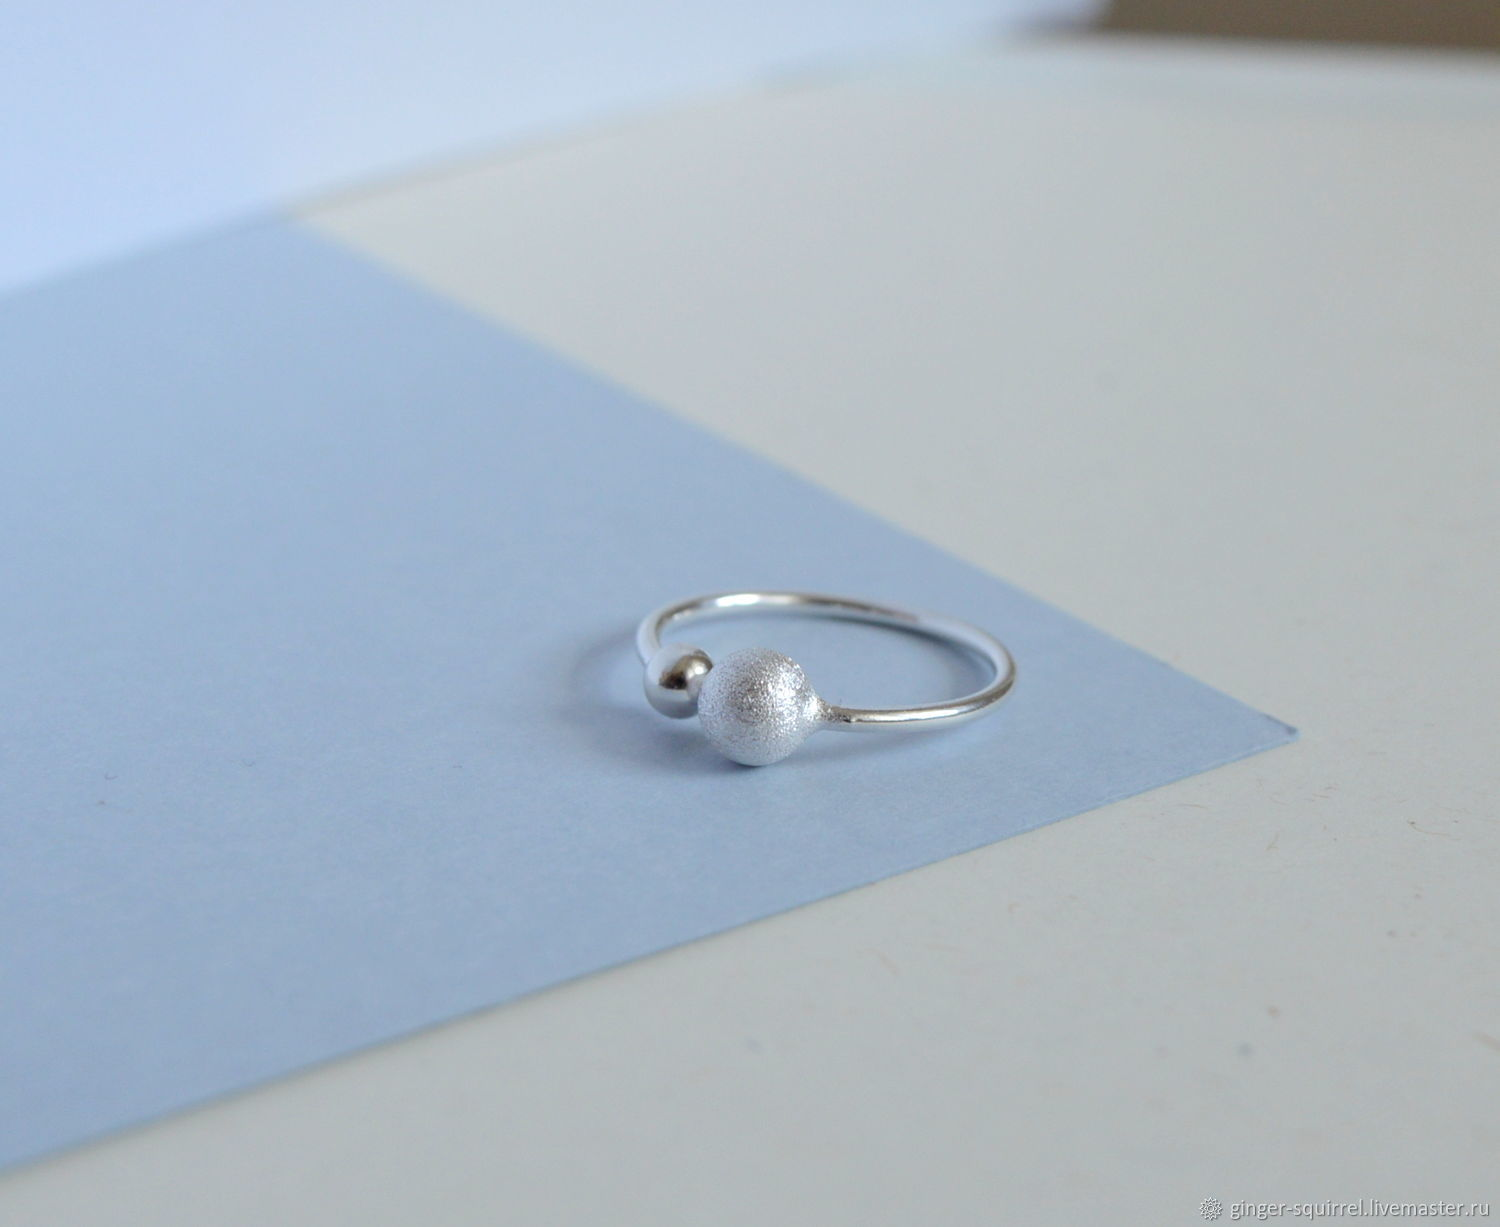 Silver ring with balls, Rings, St. Petersburg,  Фото №1